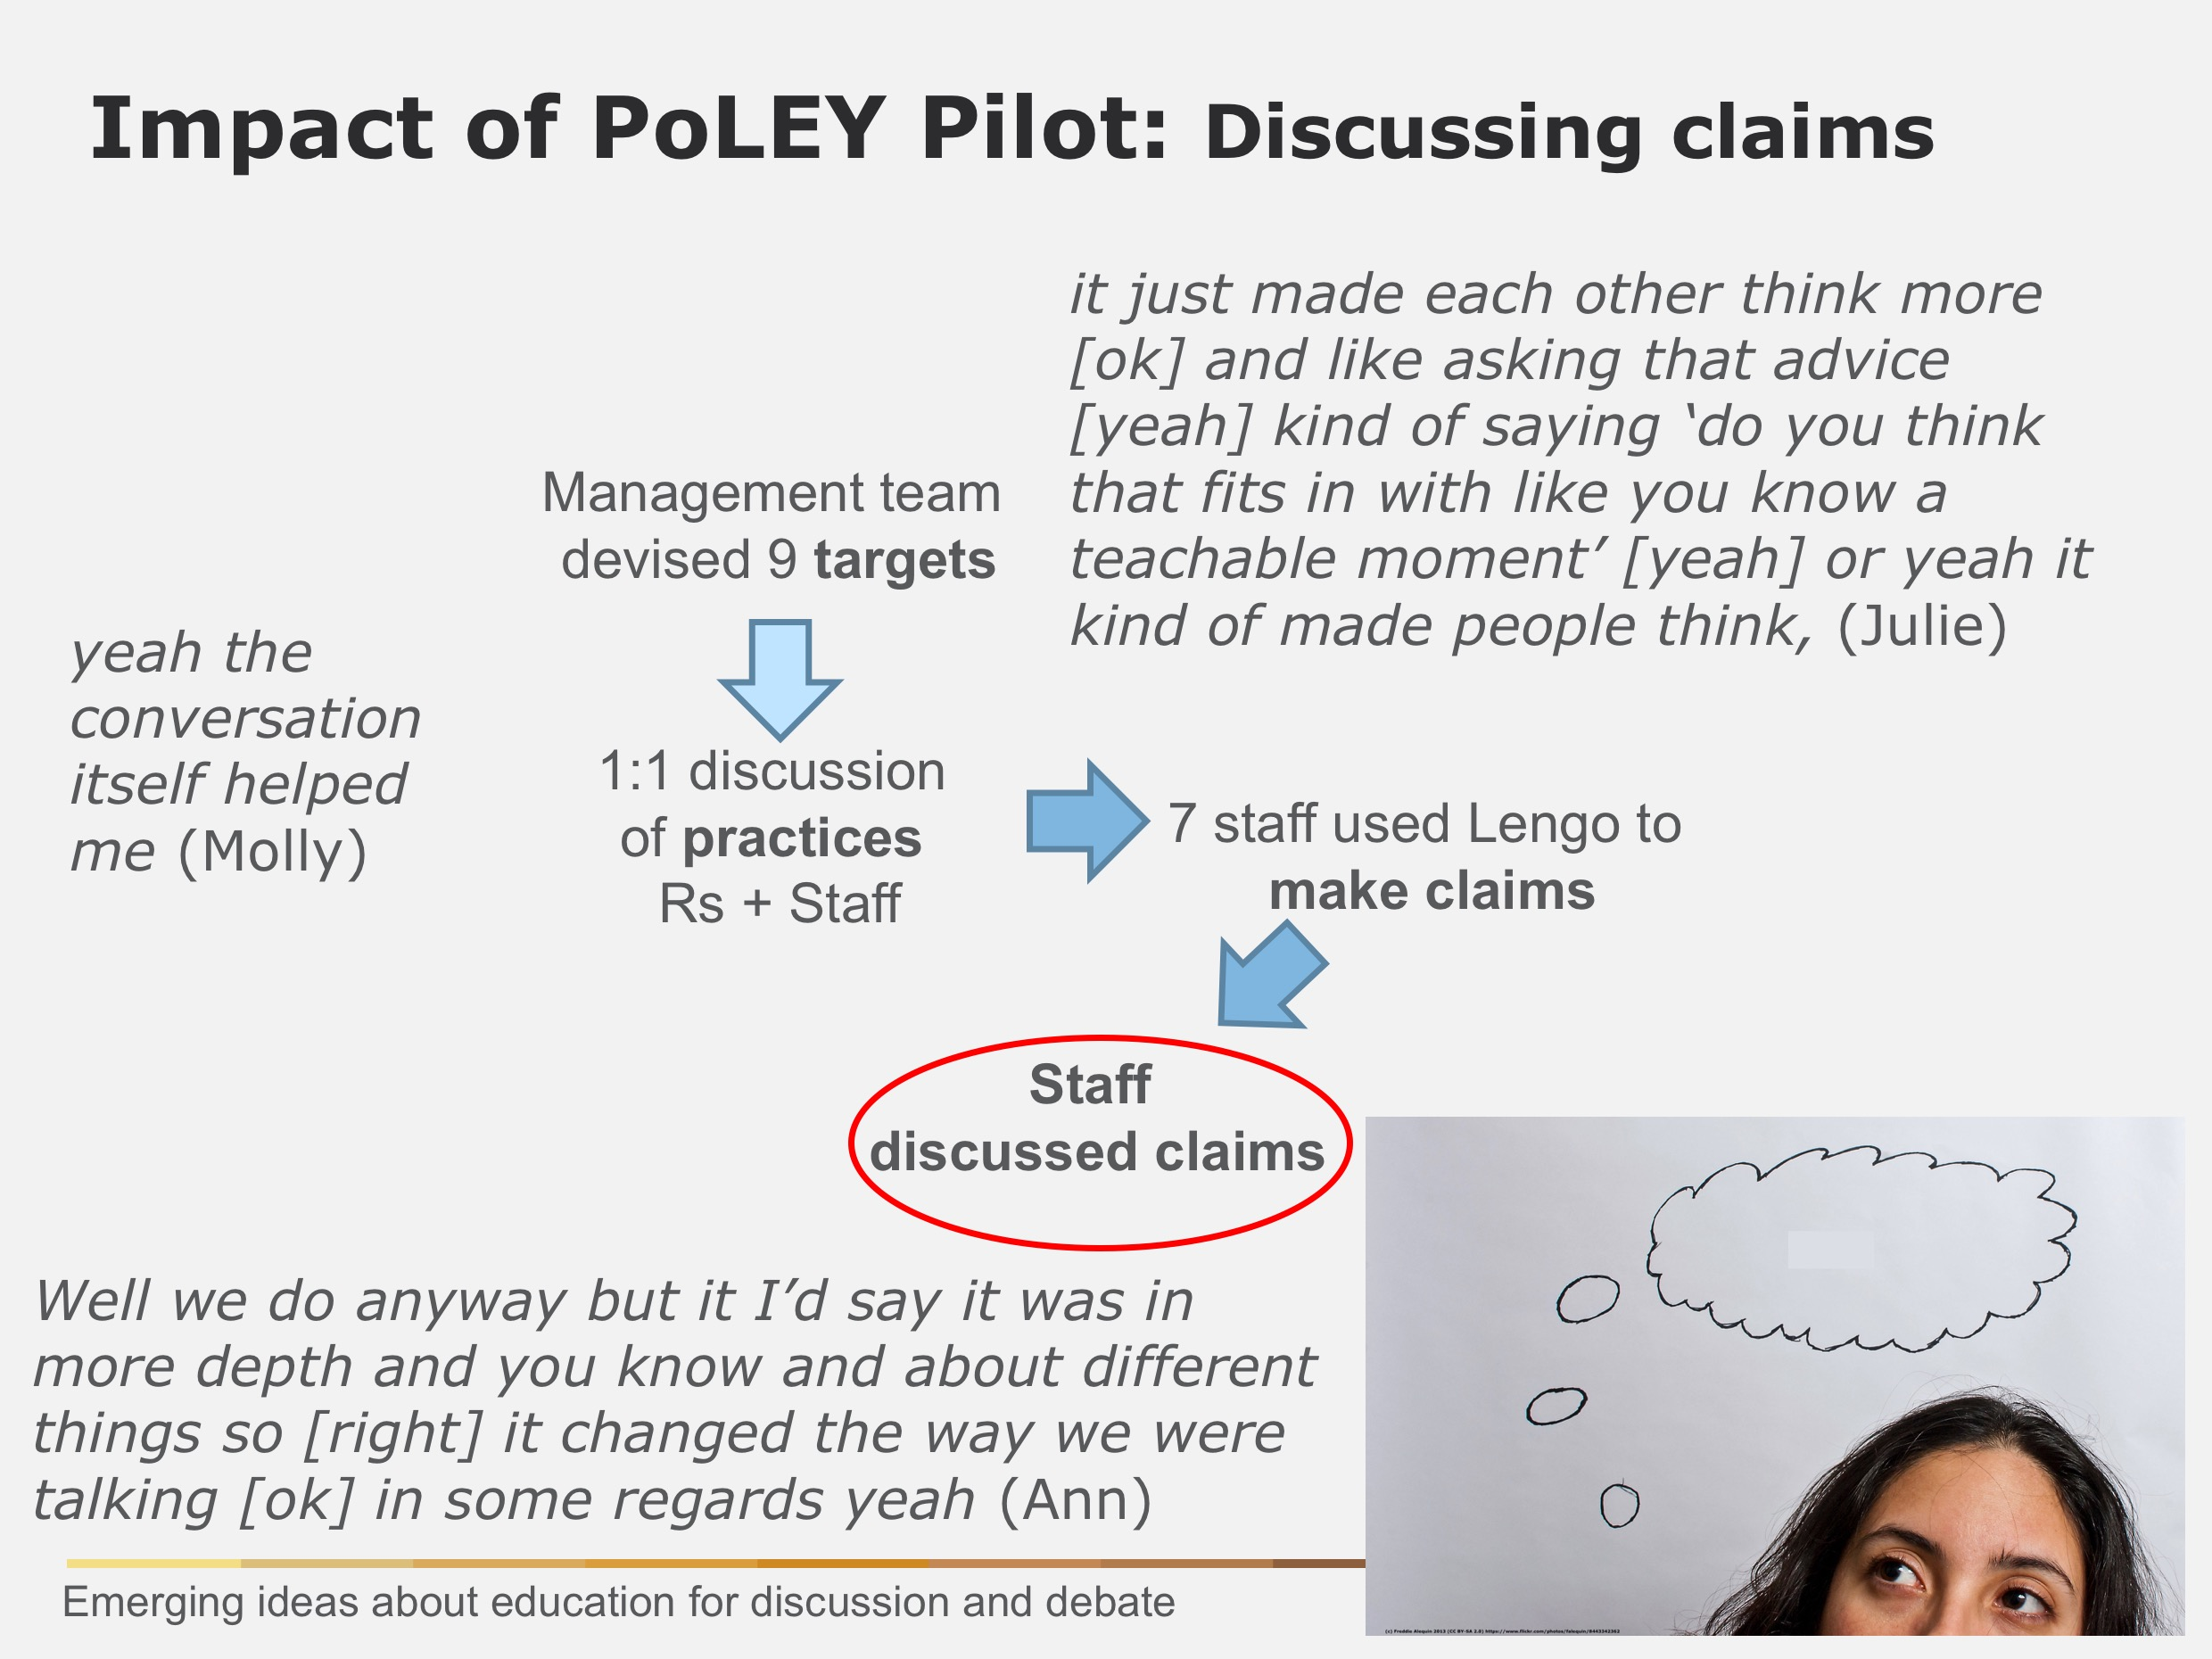 PoLEY Pilot discussing claims